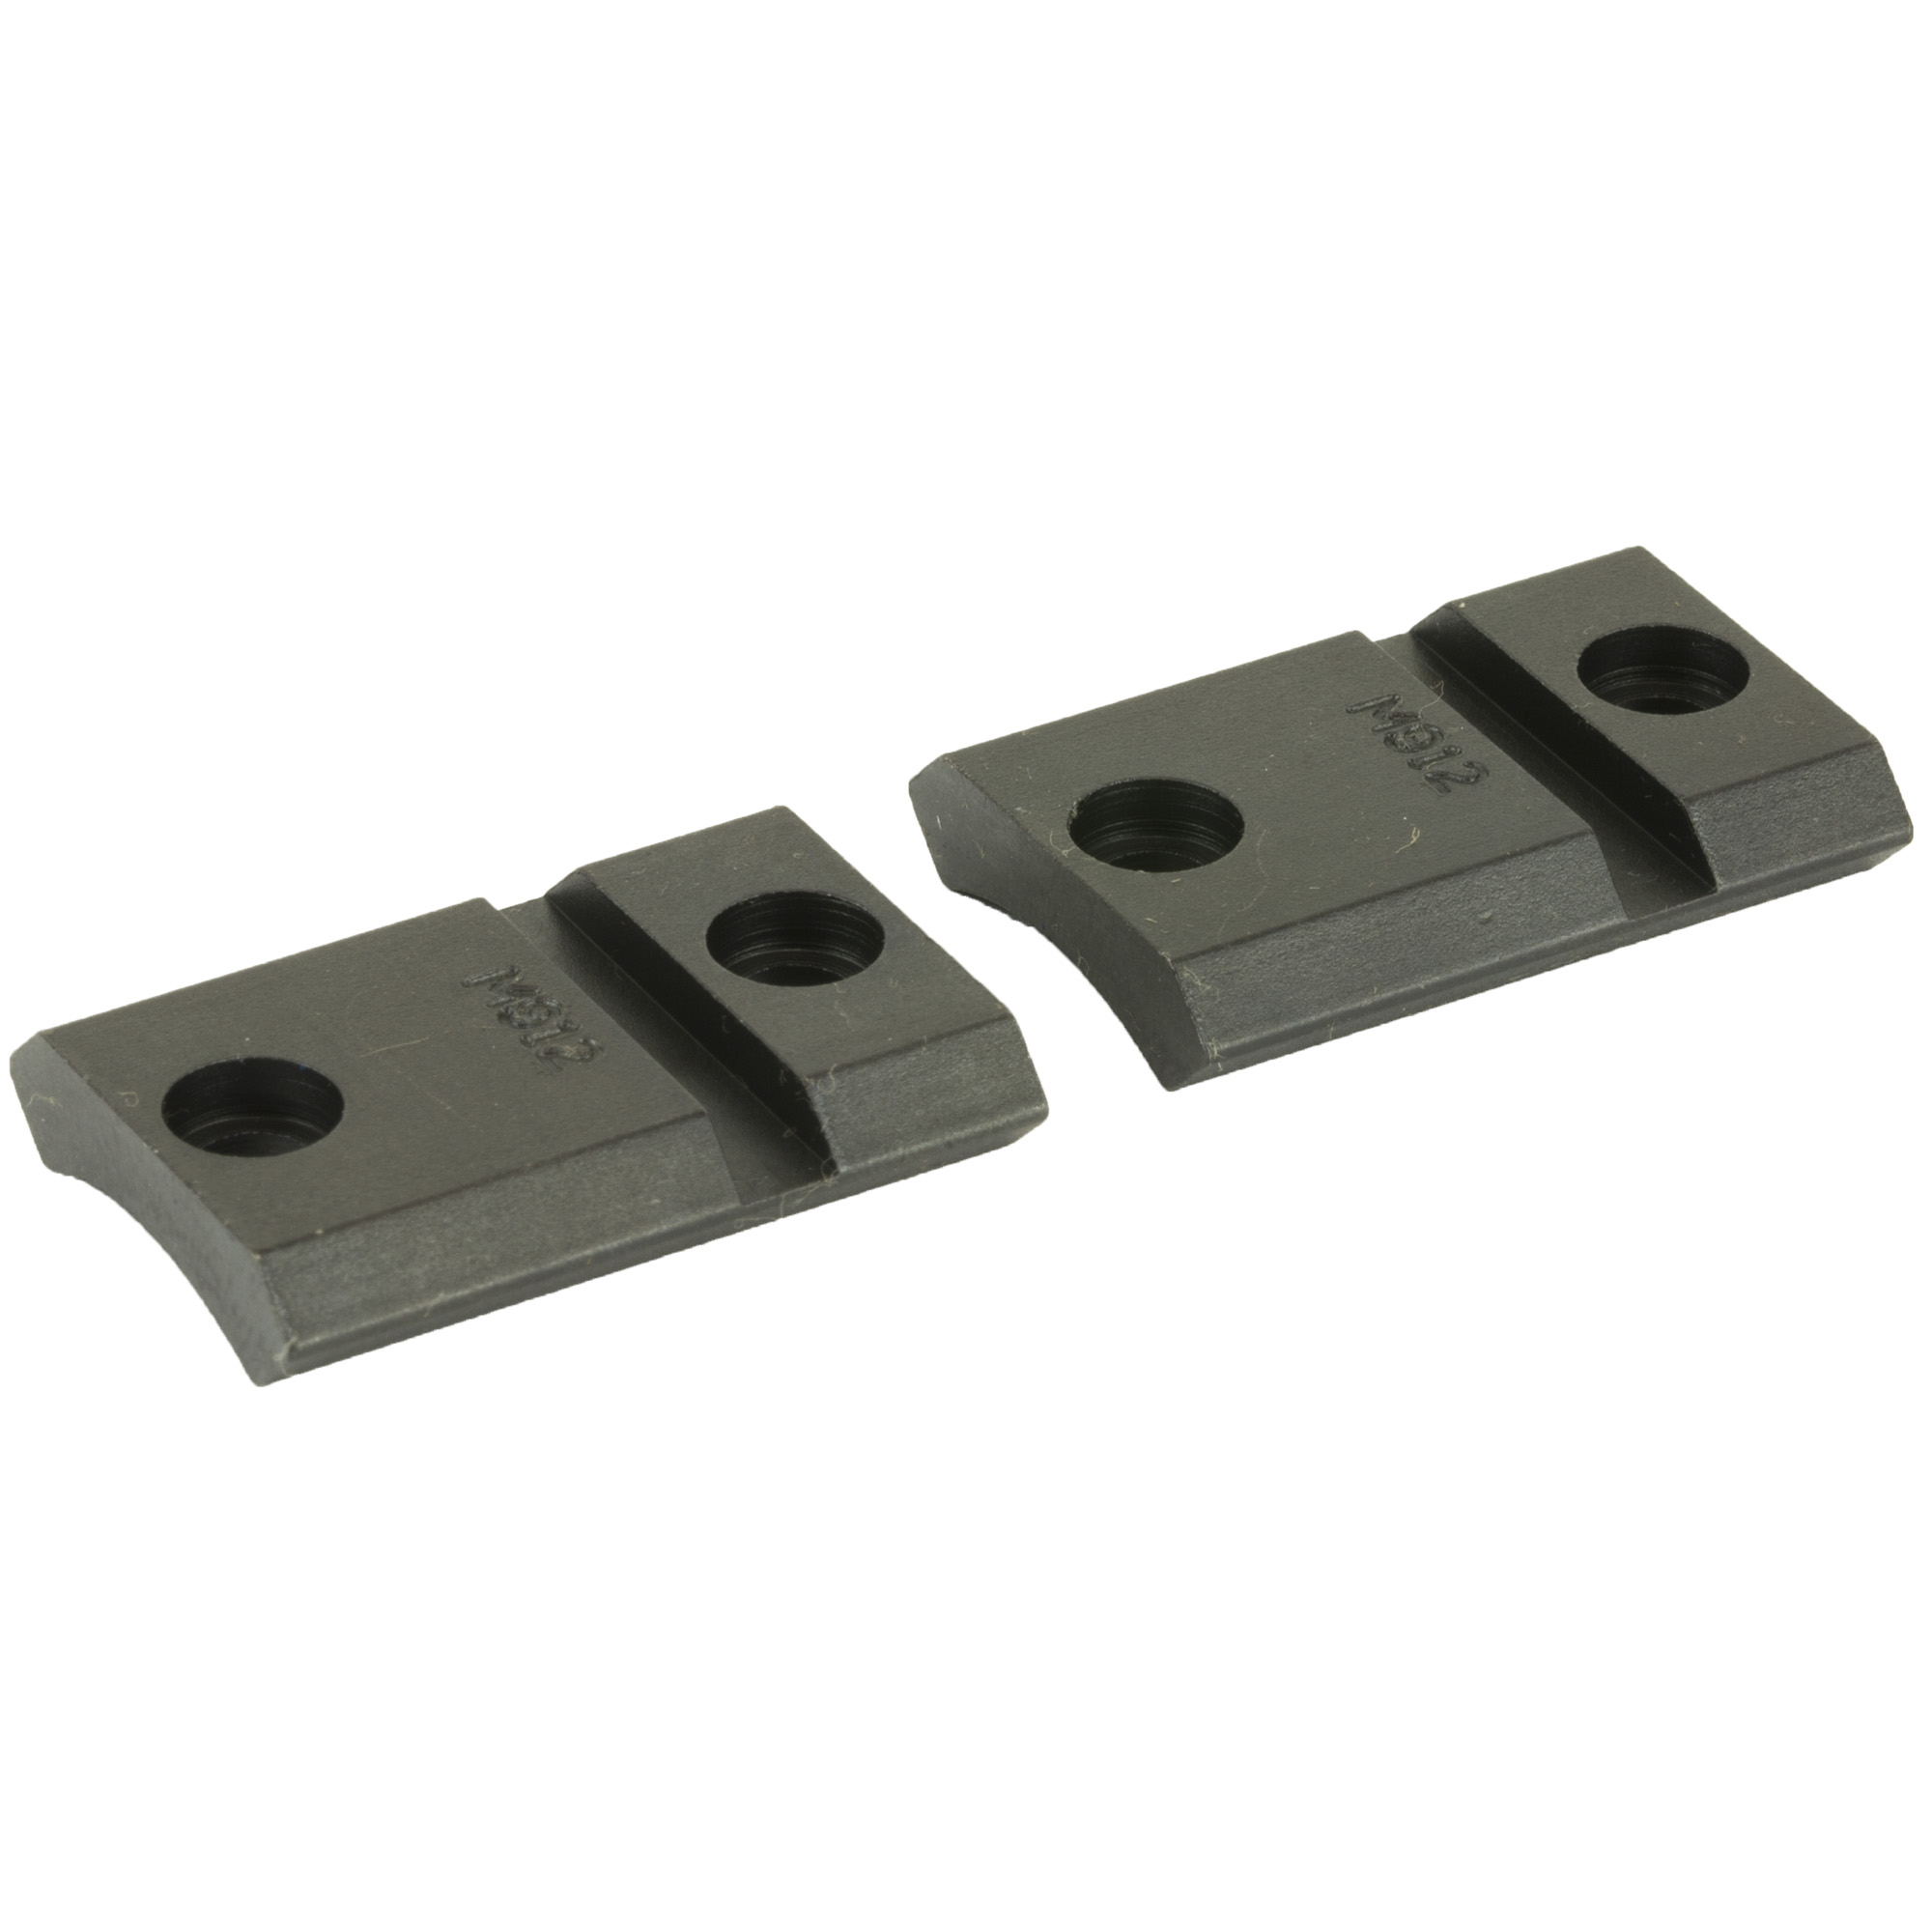 """The Maxima Steel Bases are modeled around the popular Weaver design"""" which is one of the strongest and most versatile mounting systems available today. The low profile of the Maxima Steel Bases give your firearm a sleek look. When used in conjunction with Warne Maxima QD Rings"""" the shooter is able to utilize the open sights by looking over the top of the bases without sacrificing the normal shooting position behind the firearm. Maxima Bases also offer a full width recoil slot in each base. This feature allows the recoil control keys of Warne Rings to attain maximum bearing surface."""